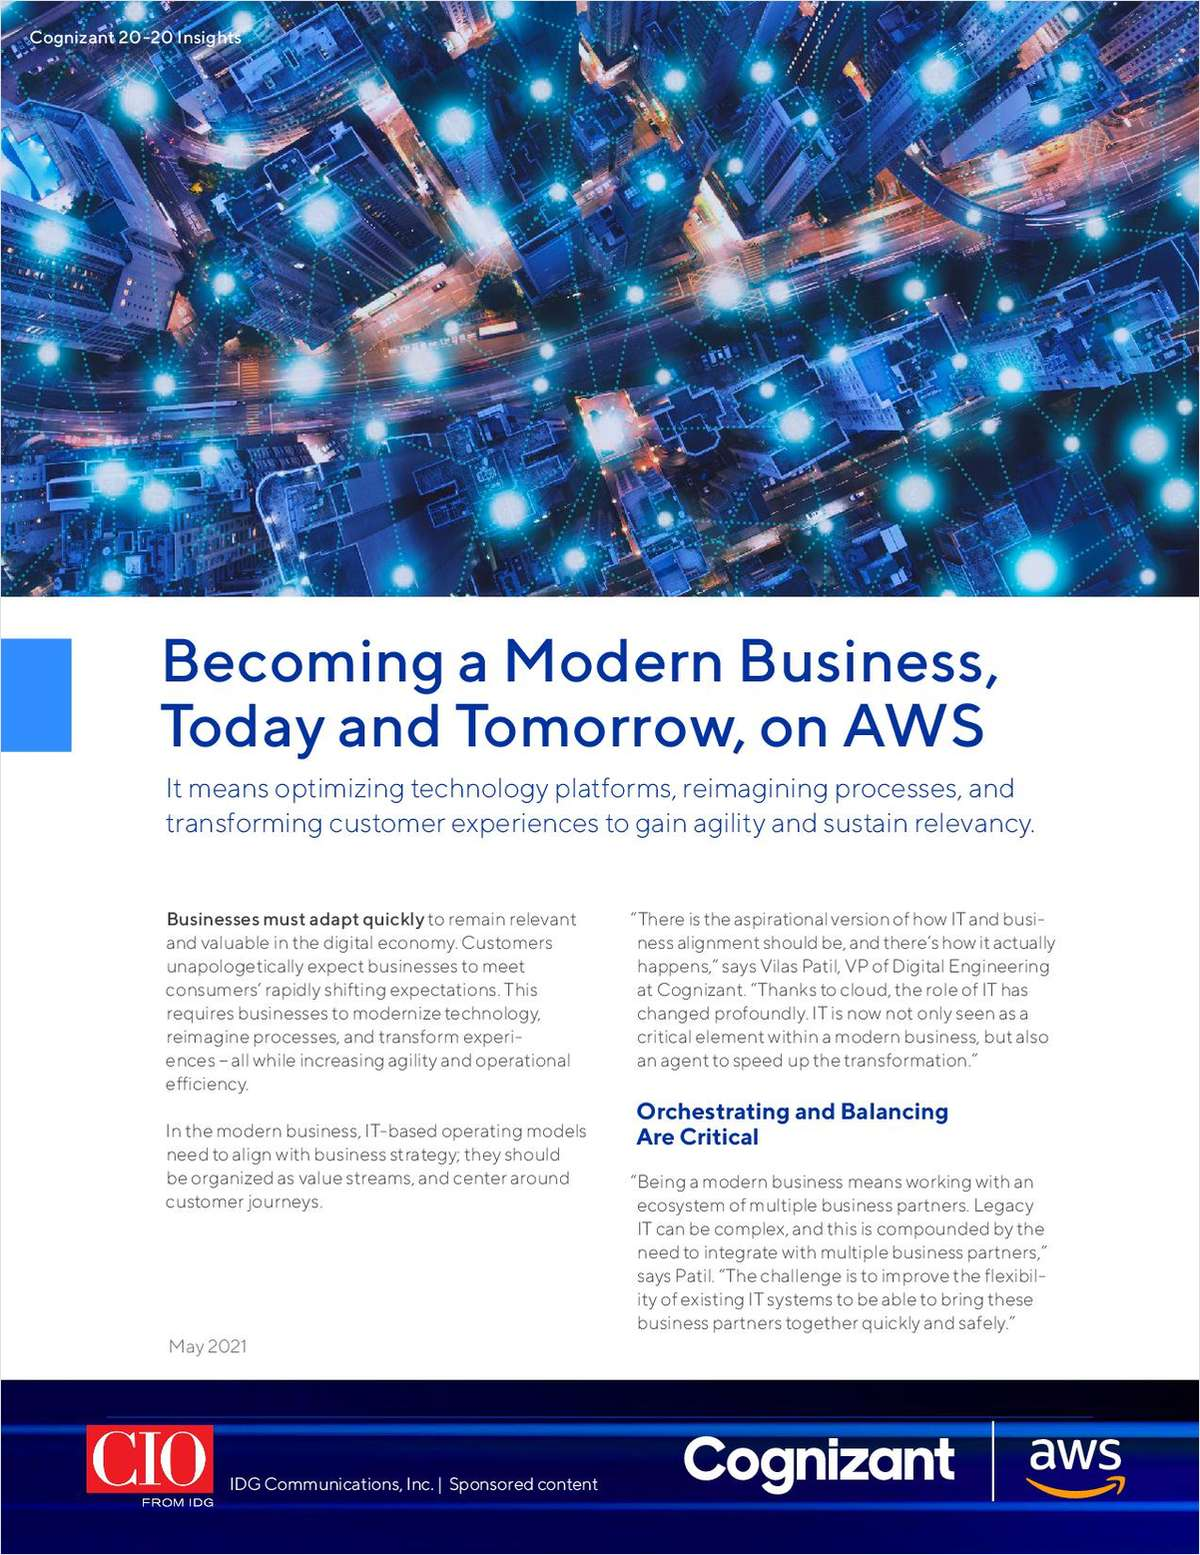 Optimize Technology Platforms, Reimagine Processes, and Transform Customer Experiences to Gain Agility and Sustain Relevancy